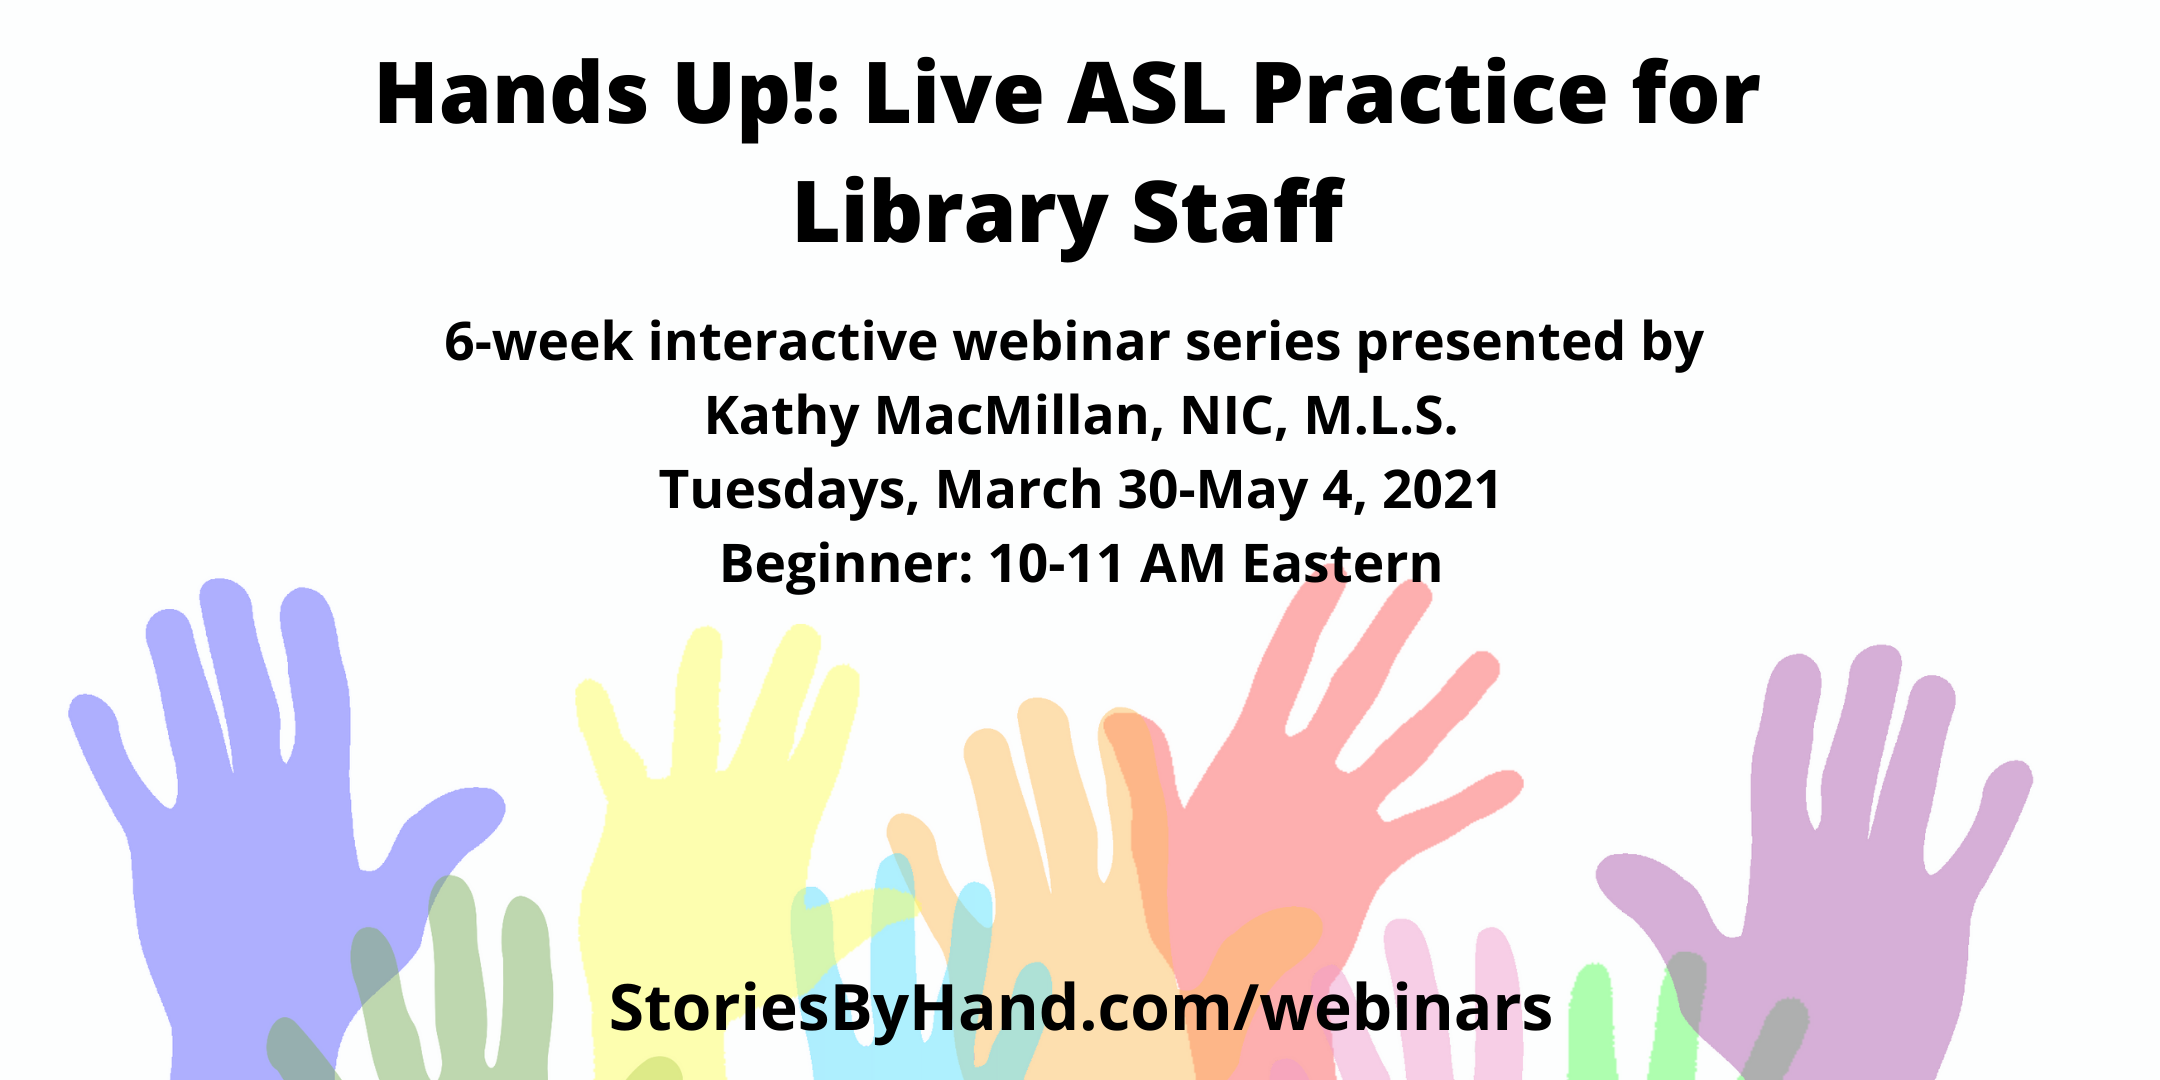 Hands Up: Live ASL Practice for Library Staff | 6-week interactive series presented by Kathy MacMillan, NIC, M.L.S. | Tuesdays, March 30-May4, 2021 |Beginner: 10-11 AM Eastern | StoriesByHand.com/webinars